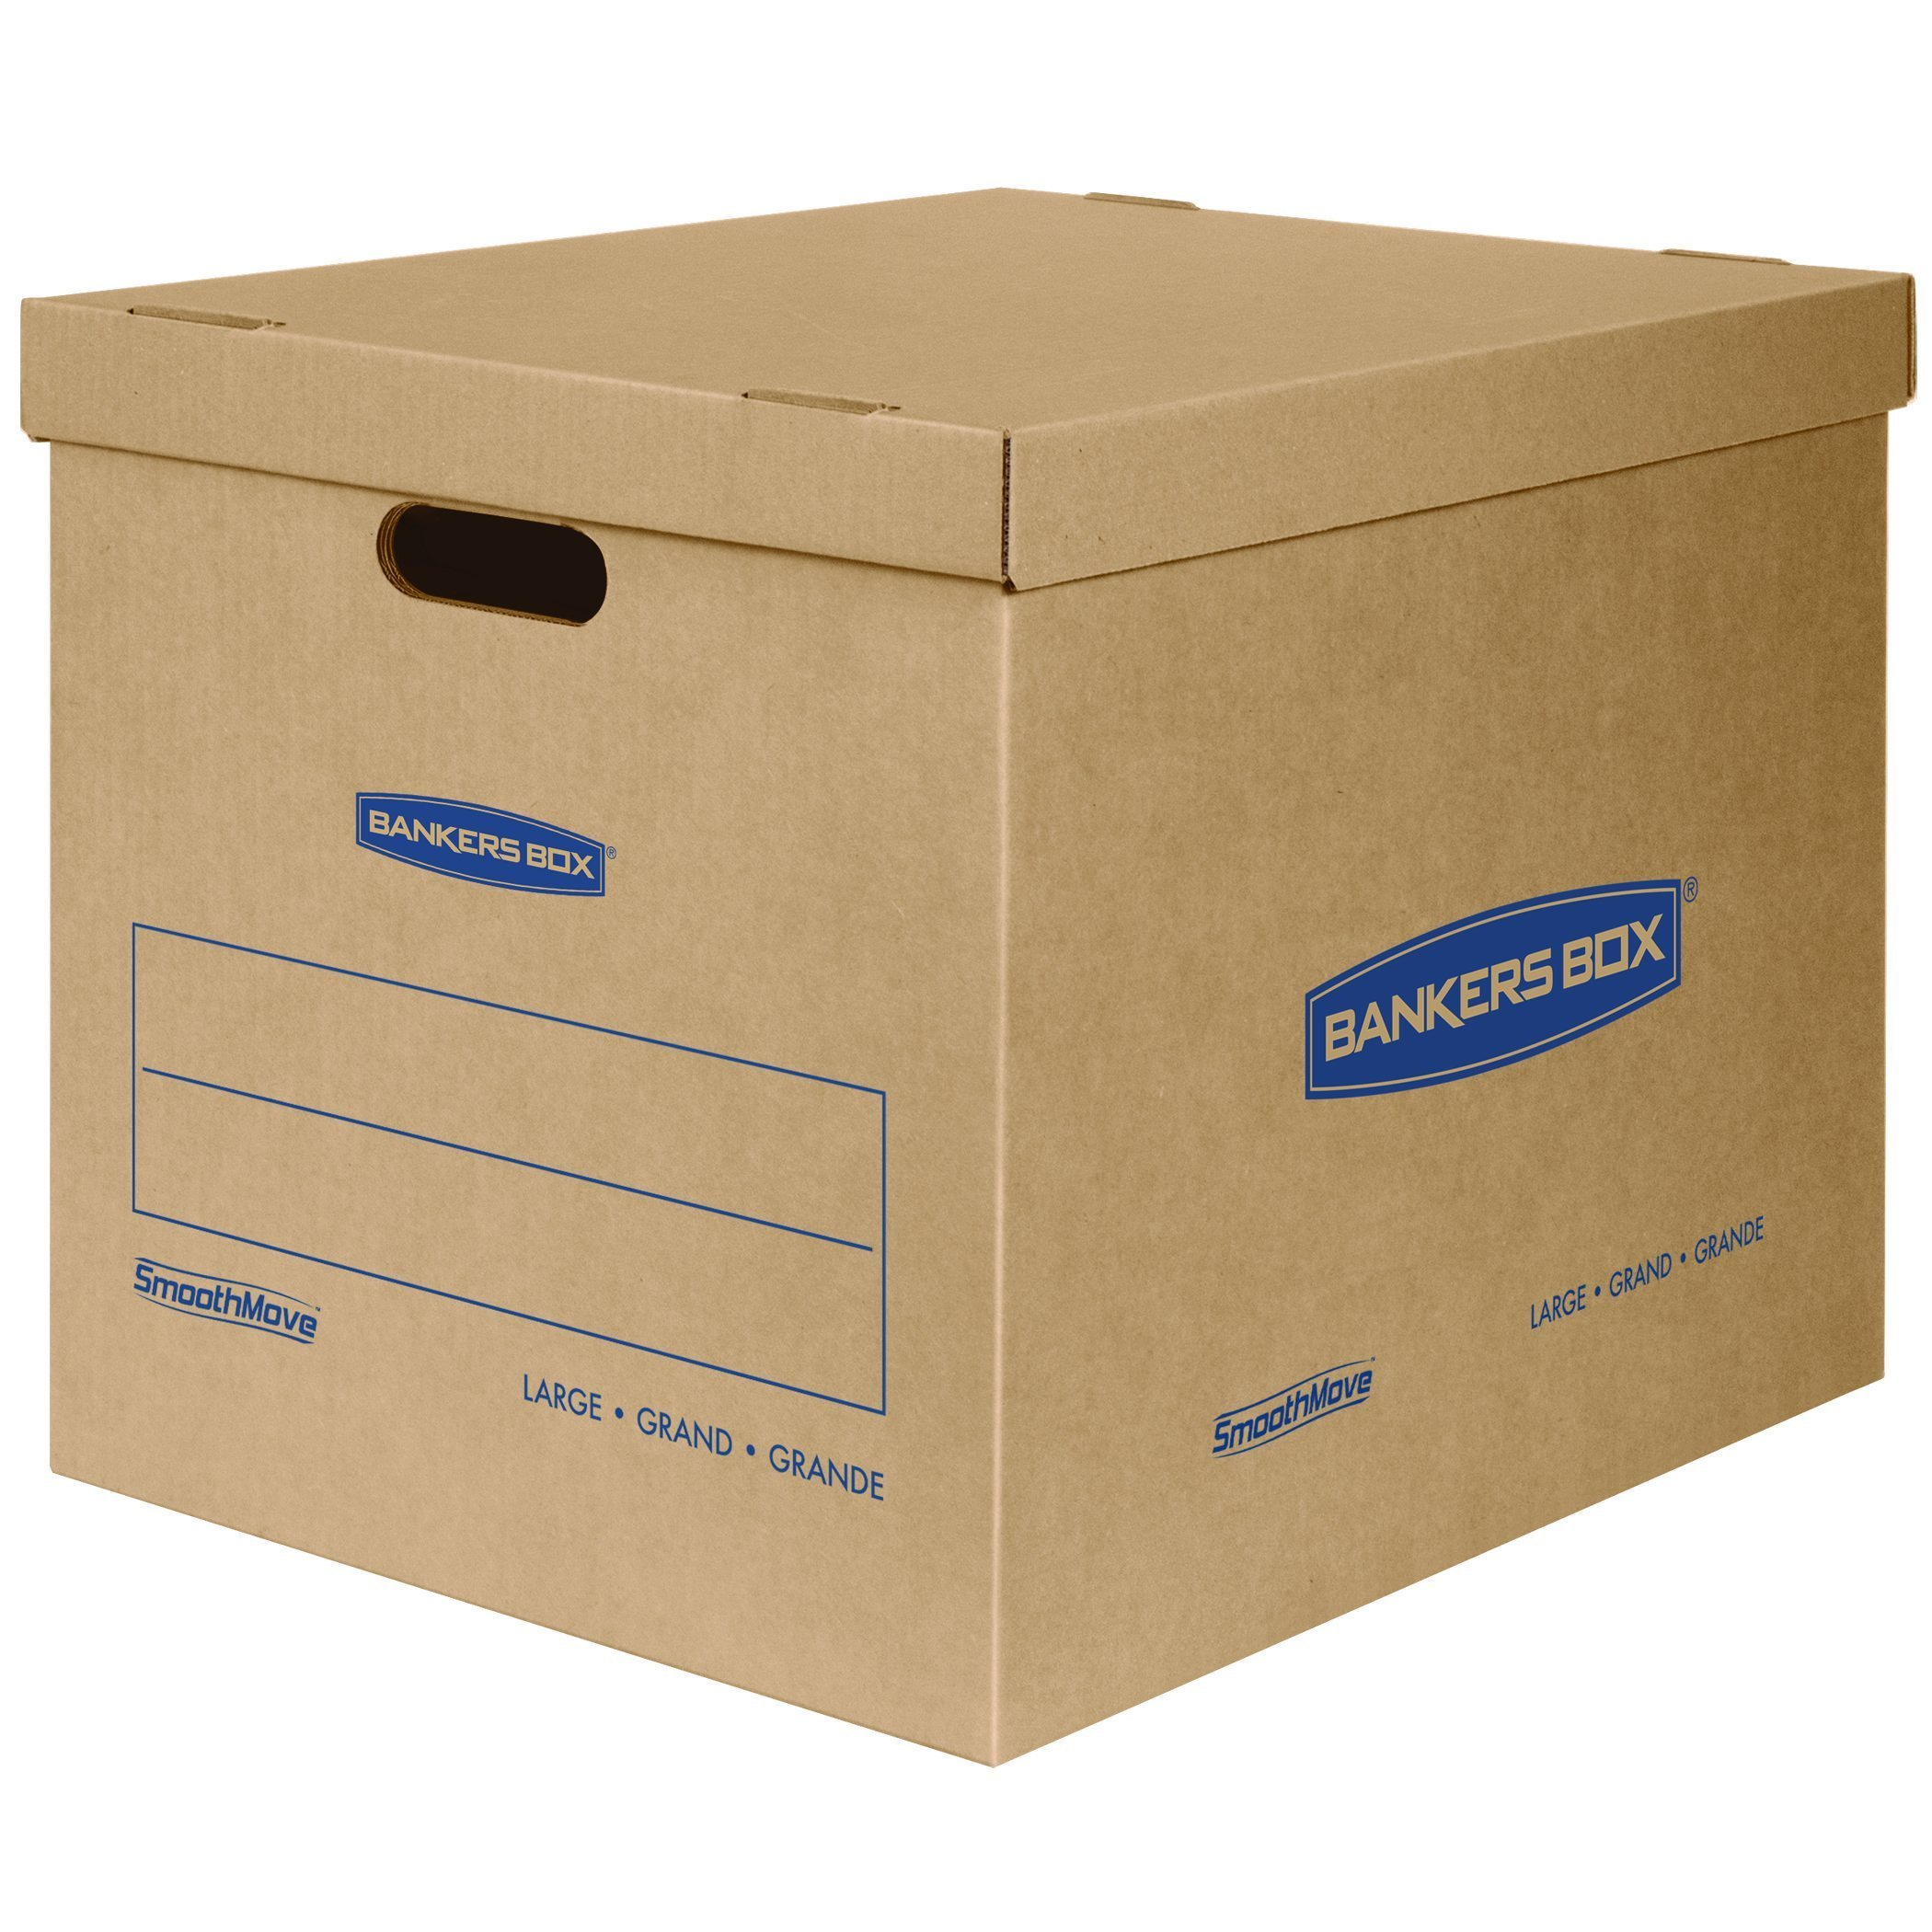 Bankers Box SmoothMove Classic Moving Boxes, Tape-Free Assembly, Easy Carry Handles, Large, 21 x 17 x 17 Inches, 5 Pack (7718201) (Renewed)